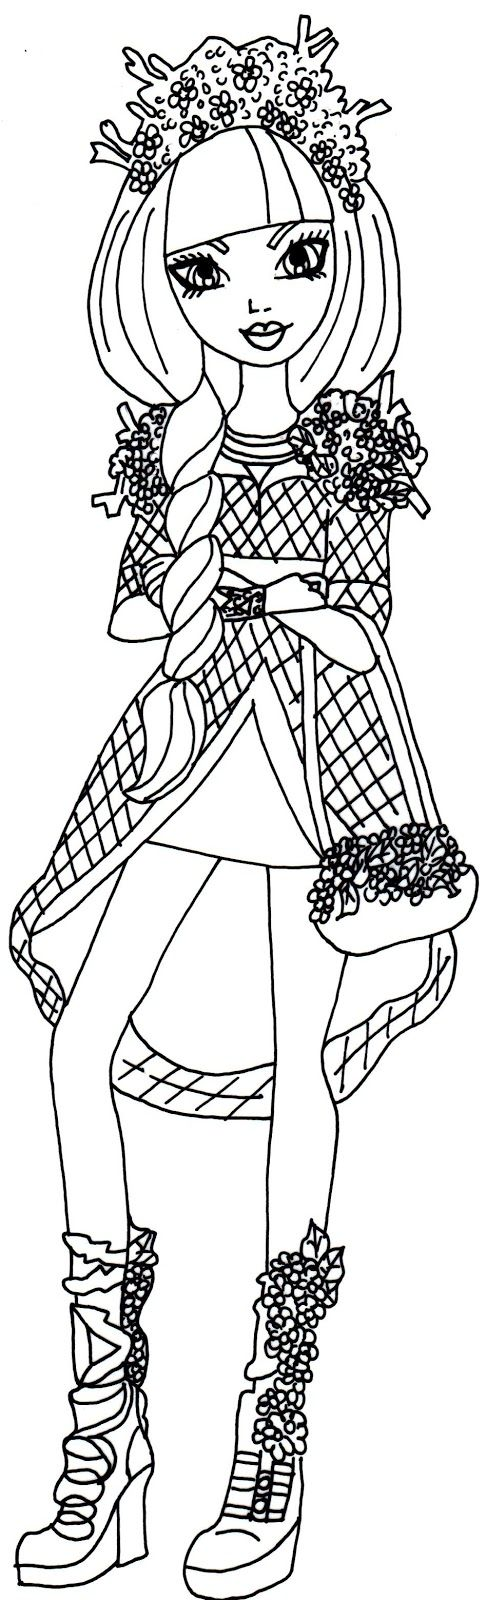 free printable ever after high coloring pages lizzie hearts crown